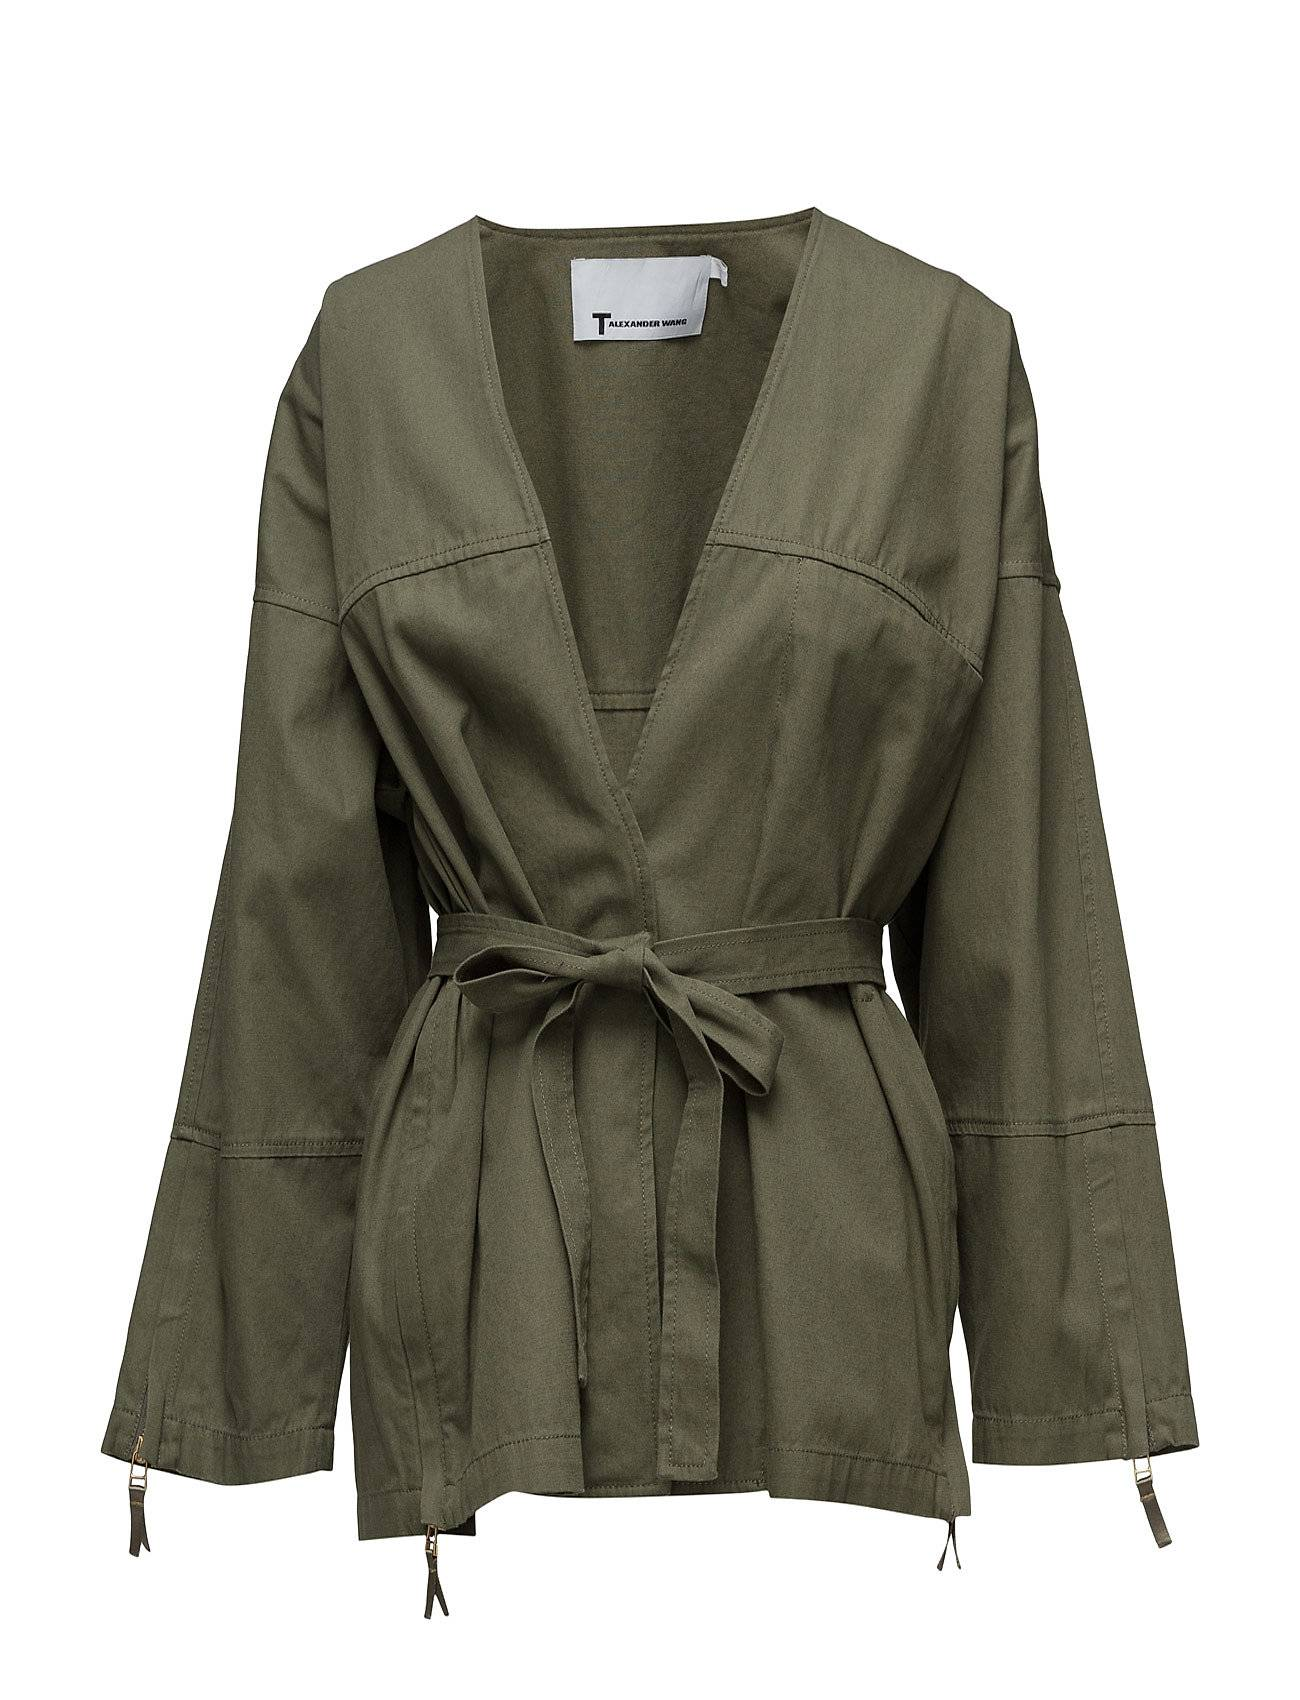 T by Alexander Wang Garment Washed Lightweight Cotton Wrap Jacket